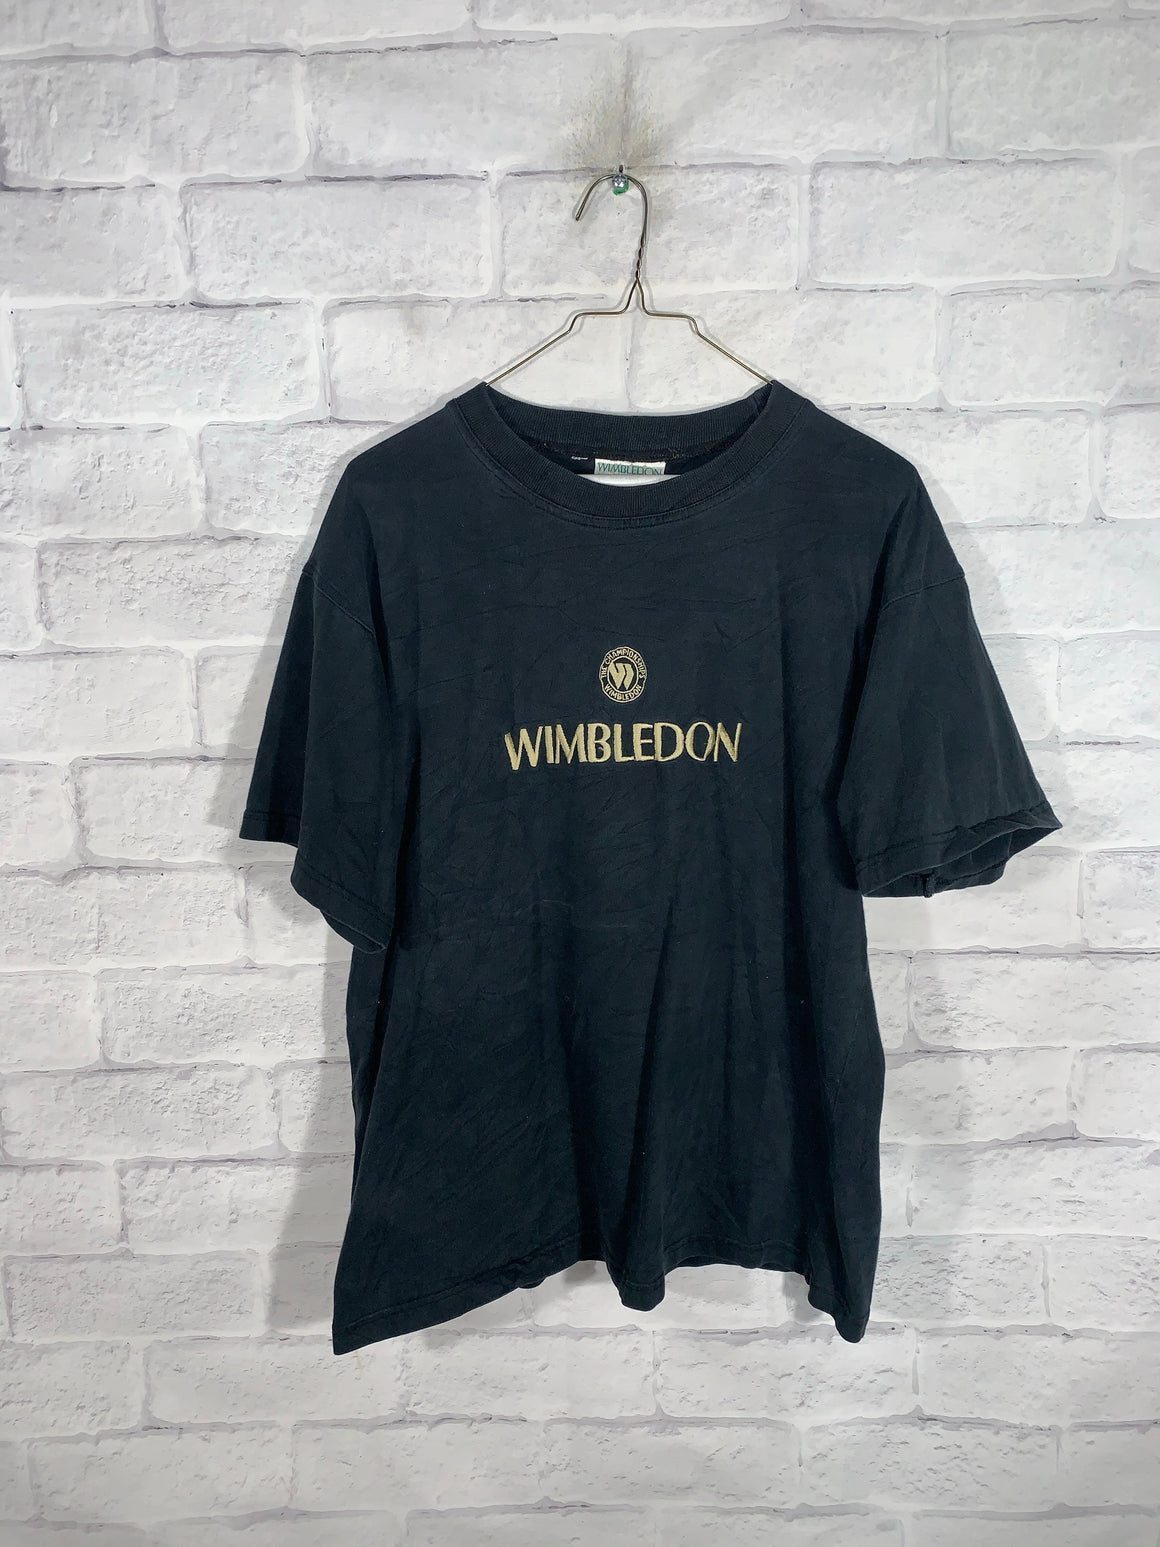 Rare Black Wimbledon Graphic T-Shirt